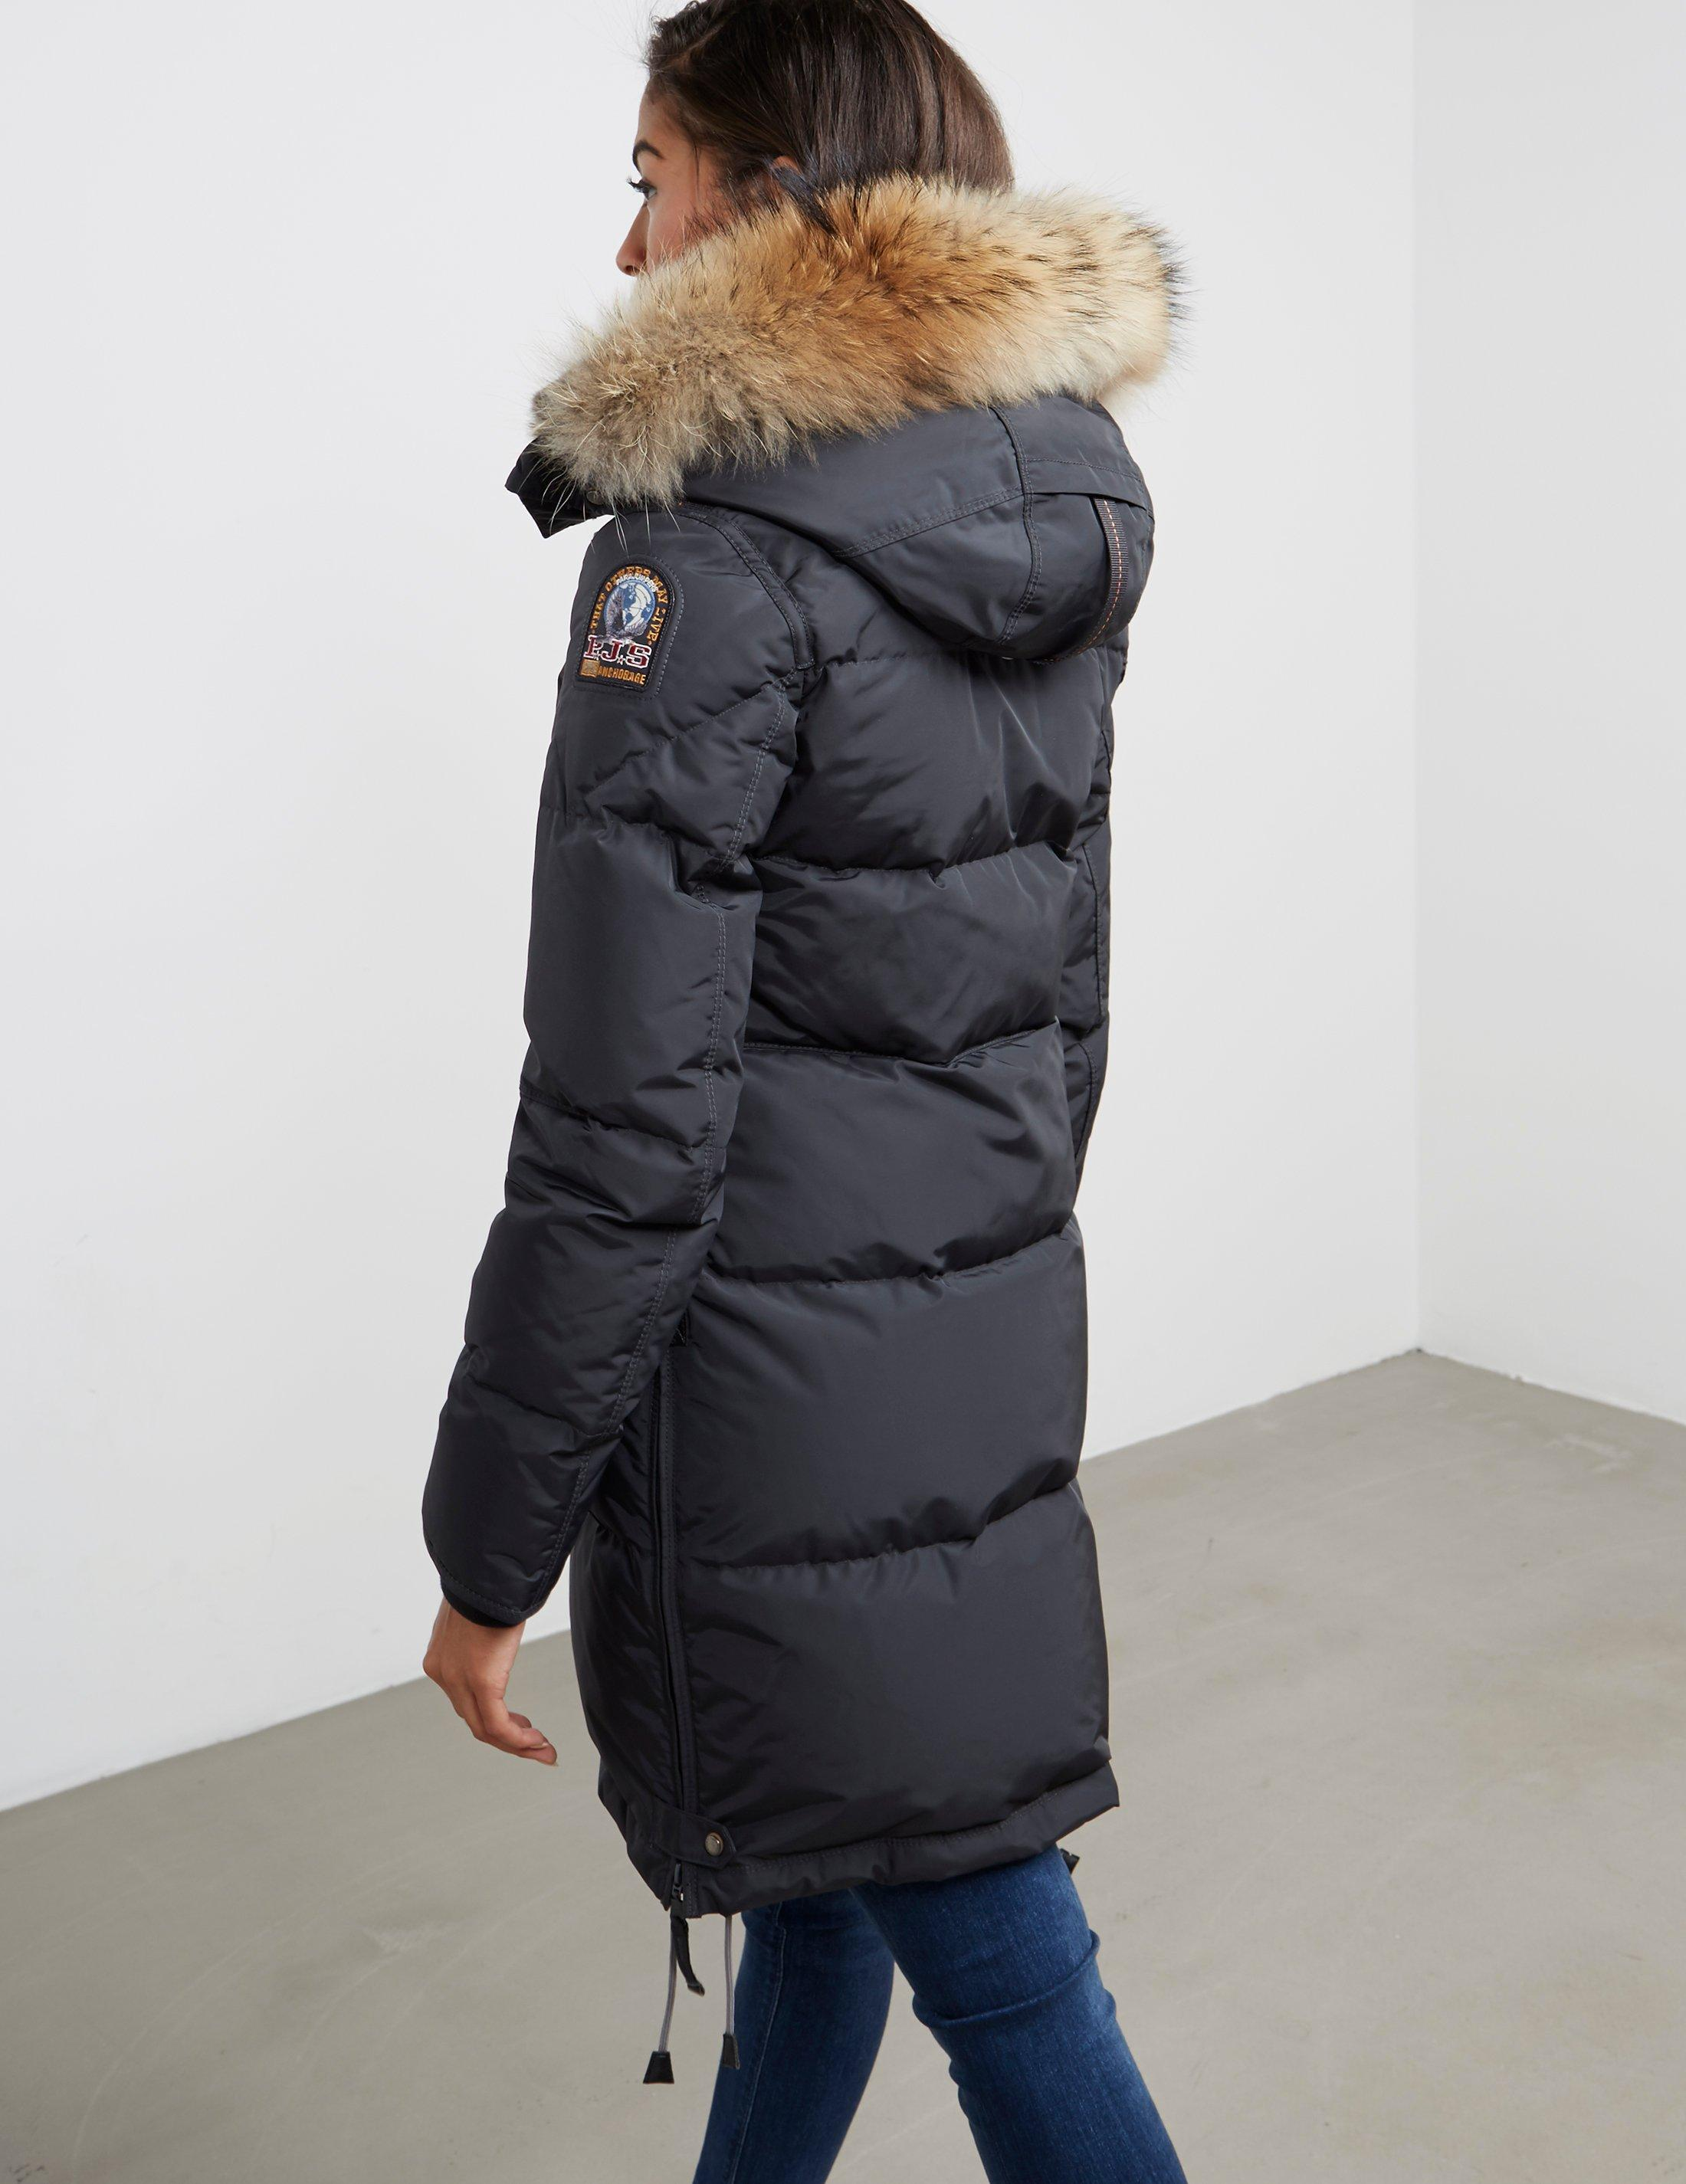 parajumpers long bear jacket in gray lyst. Black Bedroom Furniture Sets. Home Design Ideas